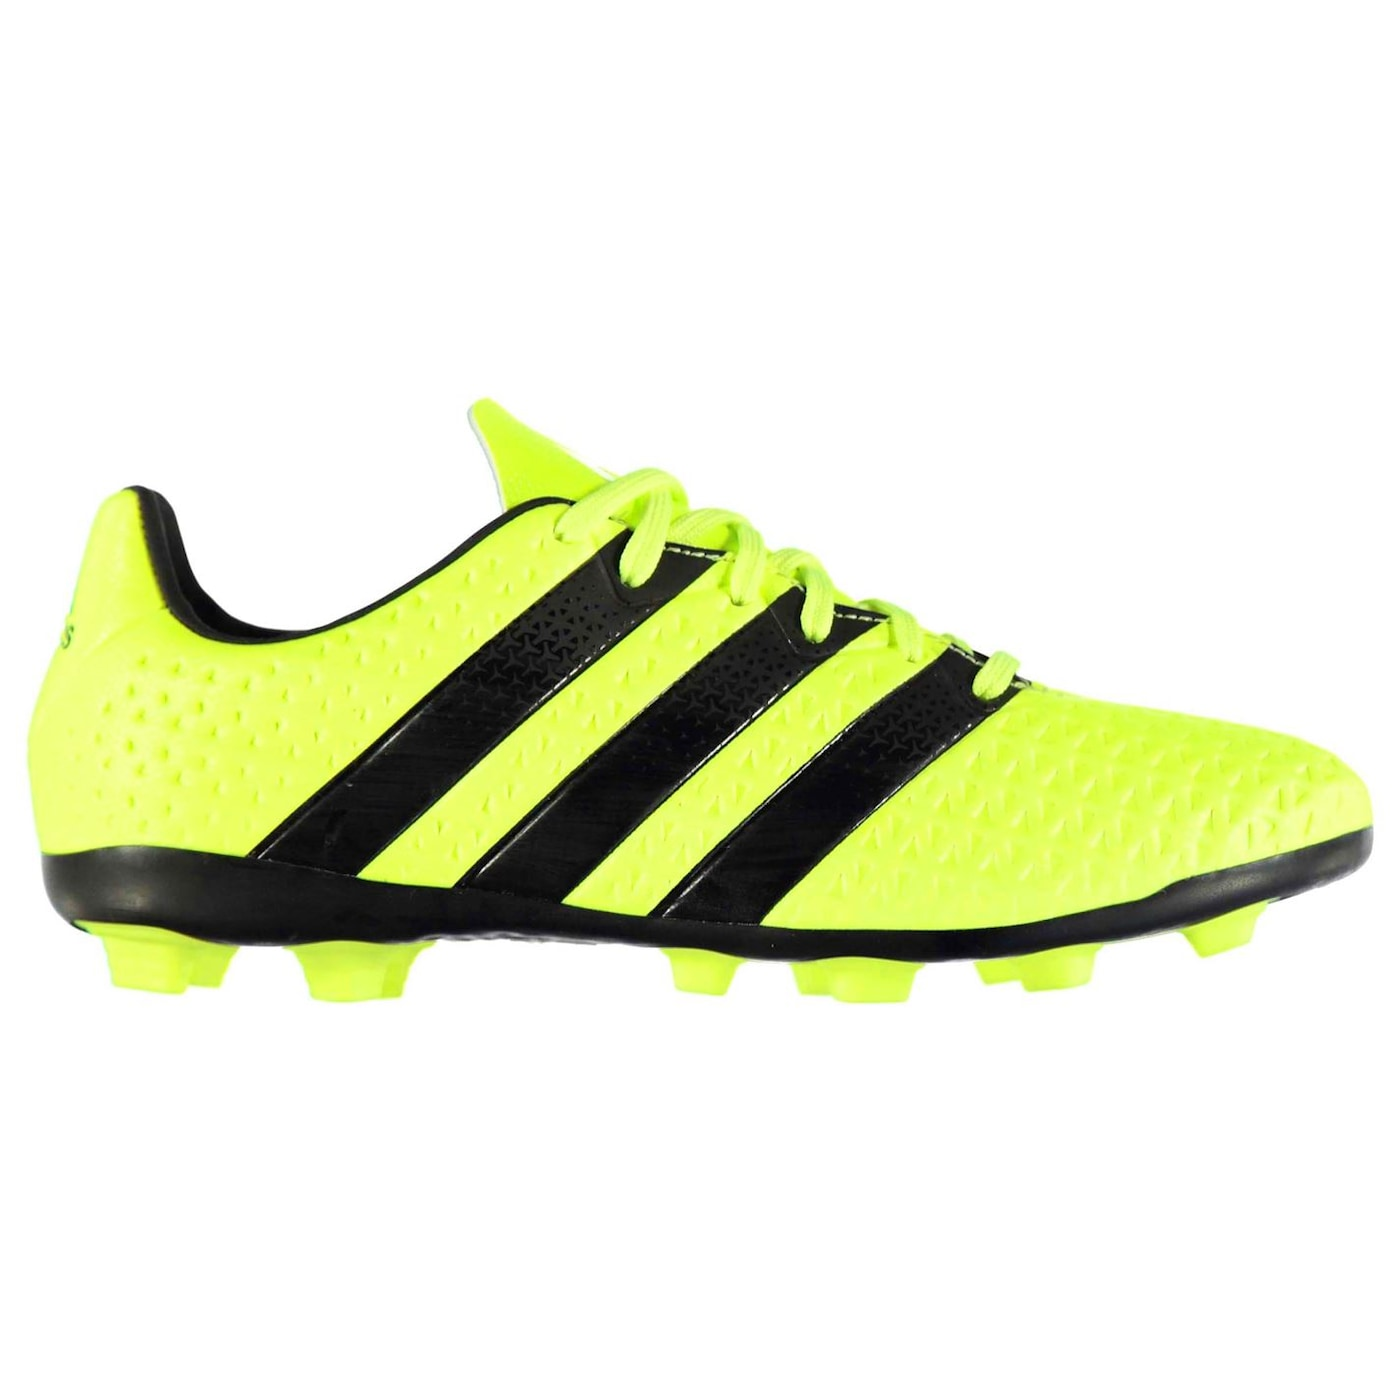 Adidas Ace 16.4 FG Football Boots Junior